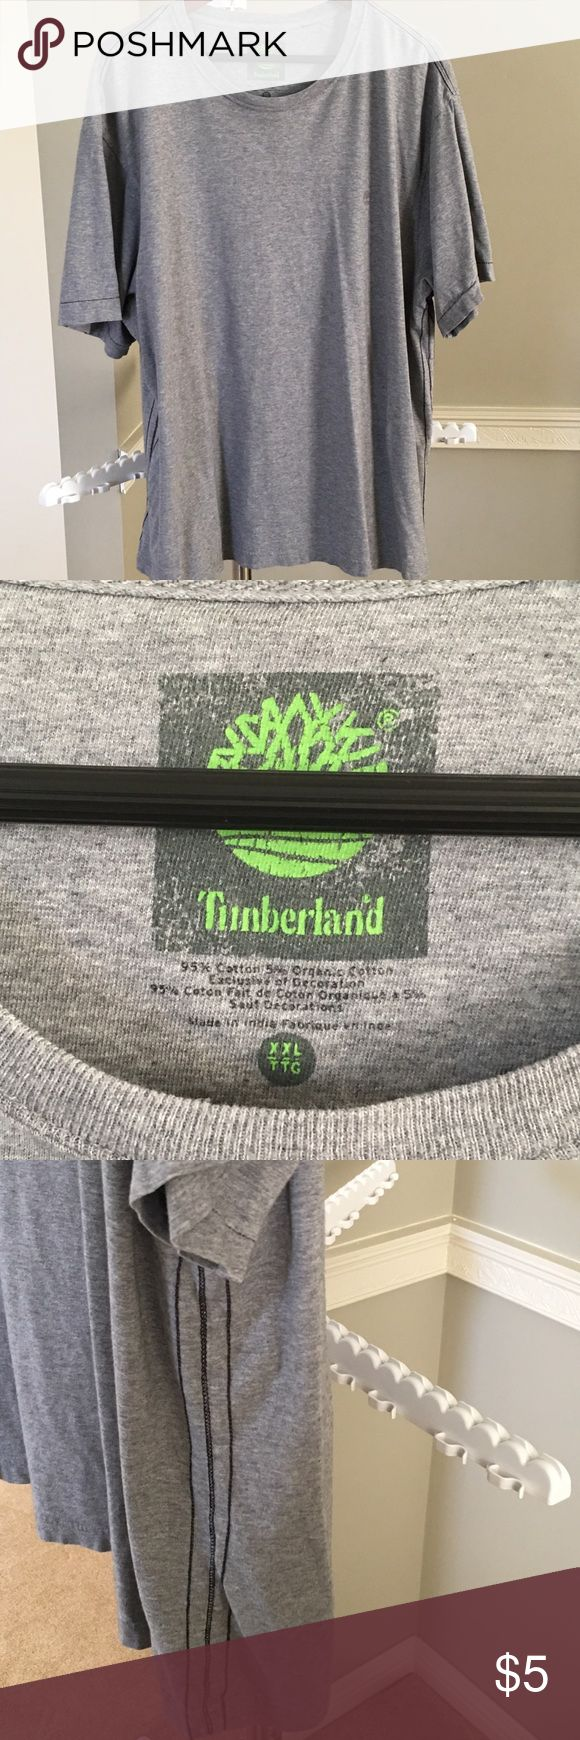 """Men's Timberland T-Shirt Men's Timberland T-Shirt. Gently worn a couple of times.  Heather Gray with black piping on sides.  2XL, length is 30"""" Timberland Shirts Tees - Short Sleeve"""